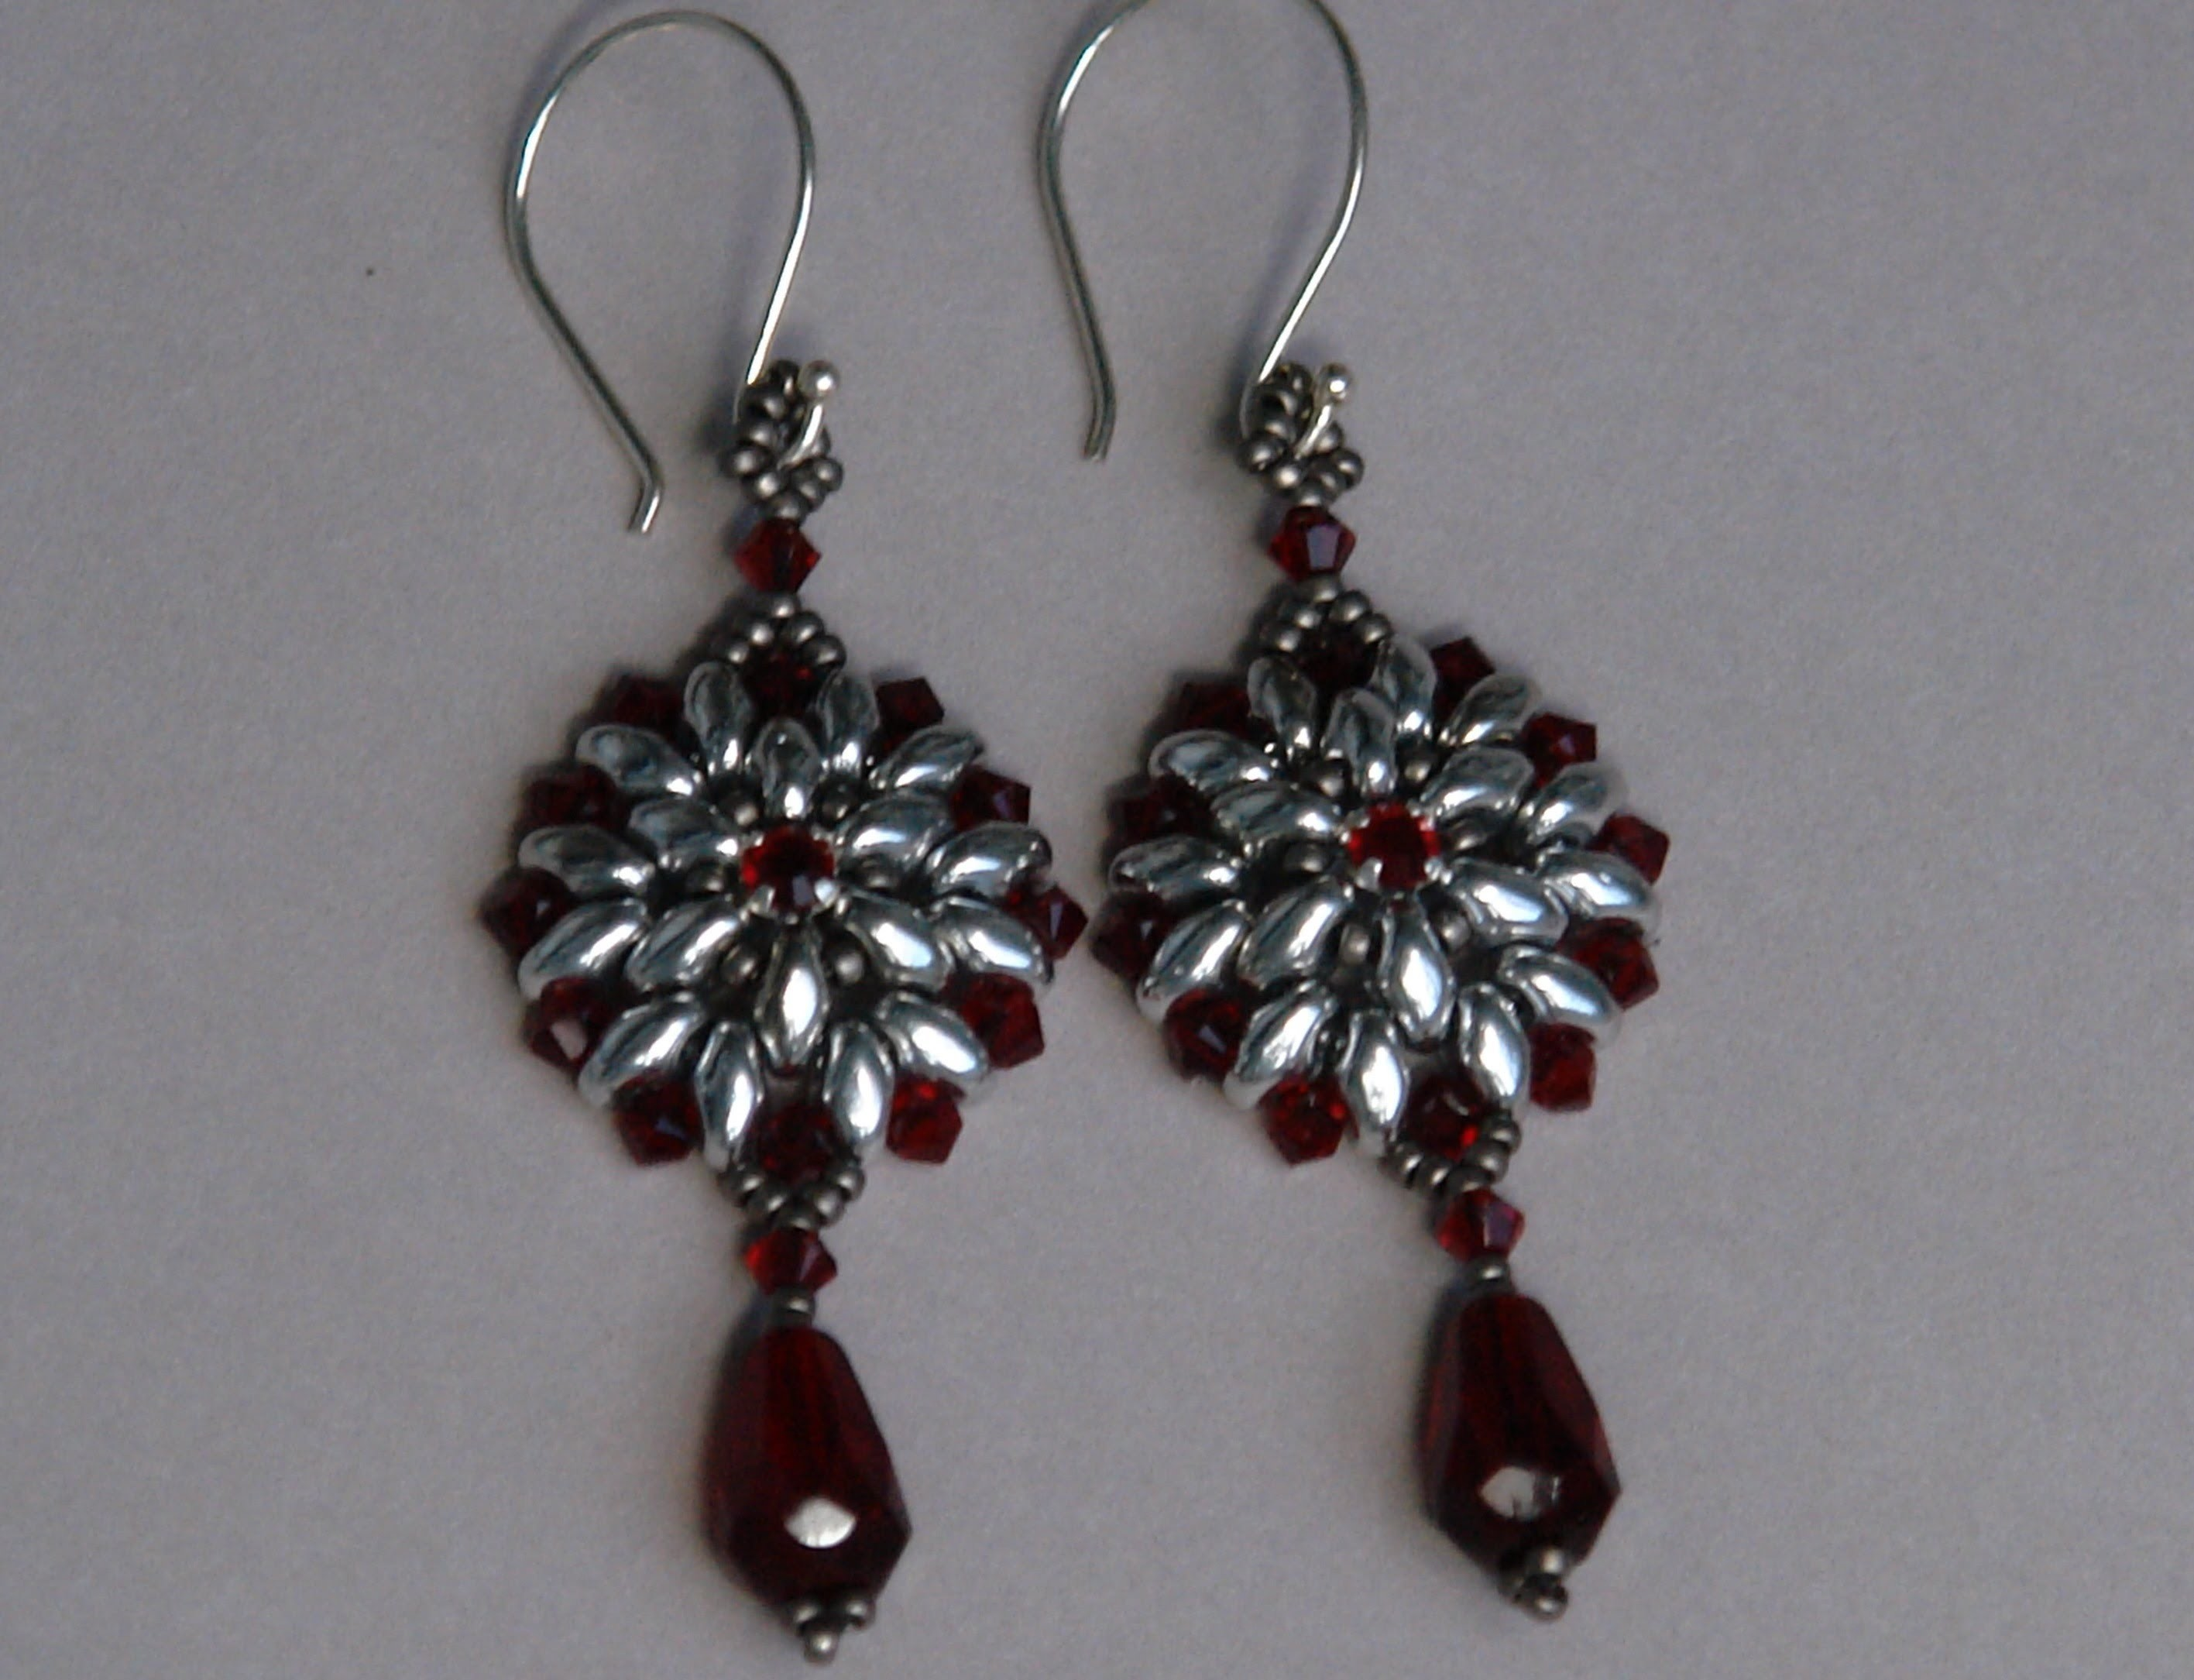 Sidonia's handmade jewelry - Superduo Victorian Earrings tutorial